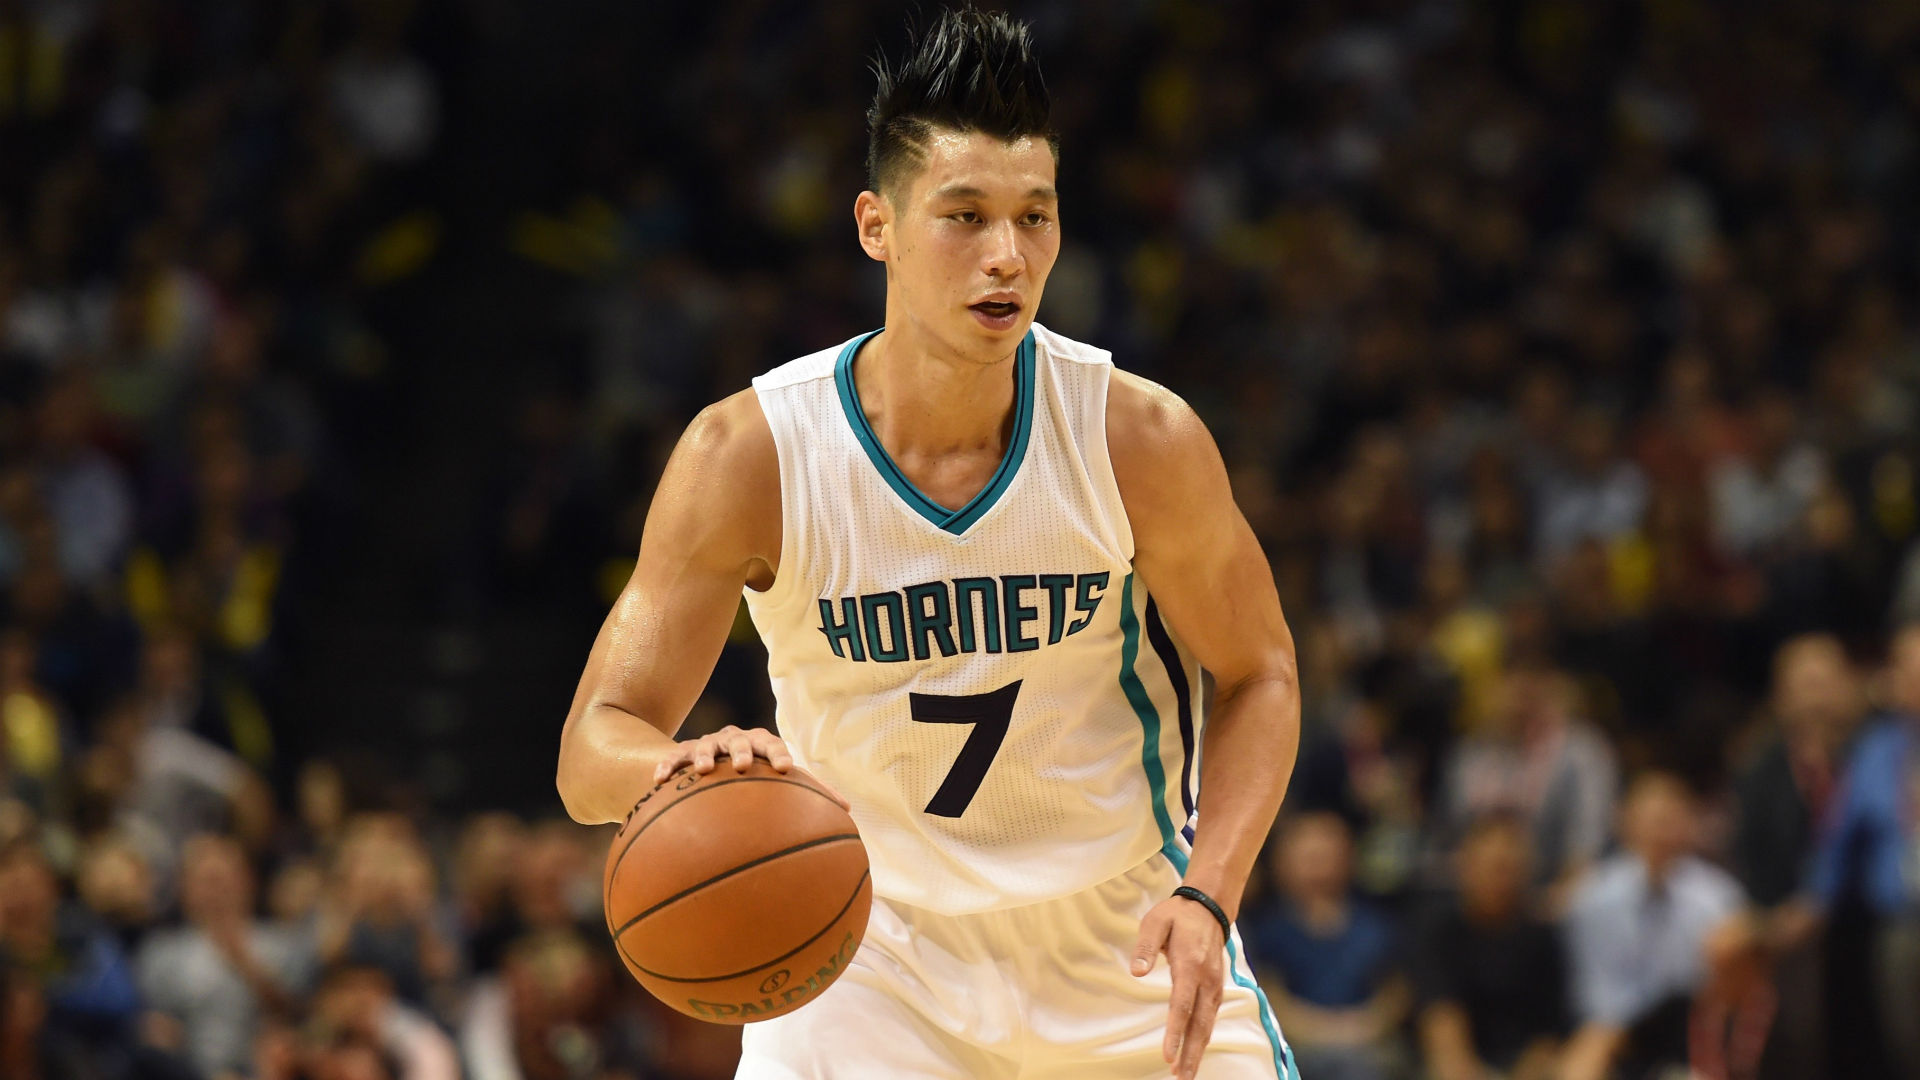 Jeremy Lin: Jeremy Lin Opens Up About Pressures Of Academic Success In